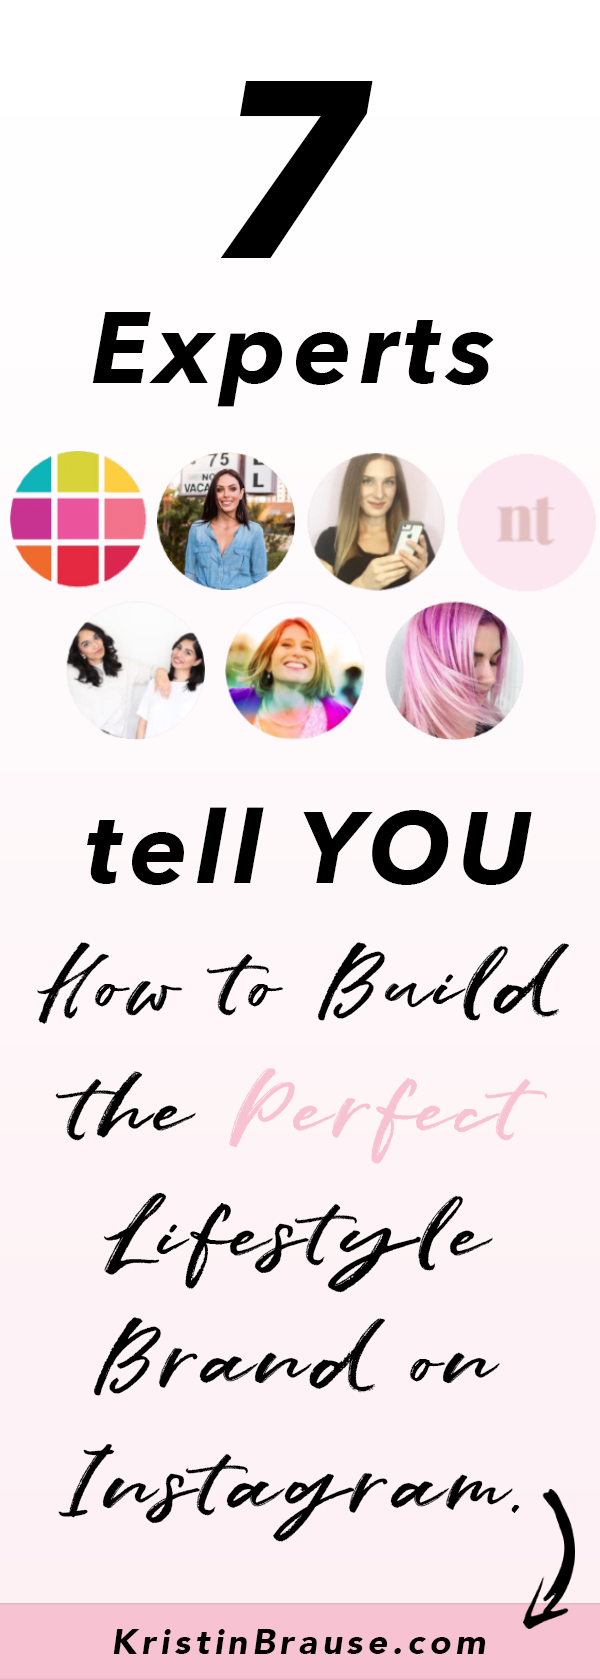 """""""How do you build the perfect lifestyle brand on Instagram?""""is a question I get asked a lot. For many female entrepreneurs, building a lifestyle brand is the holy grail because it allows you to be totally you, and to build a business around your personality. But mastering the art of build"""